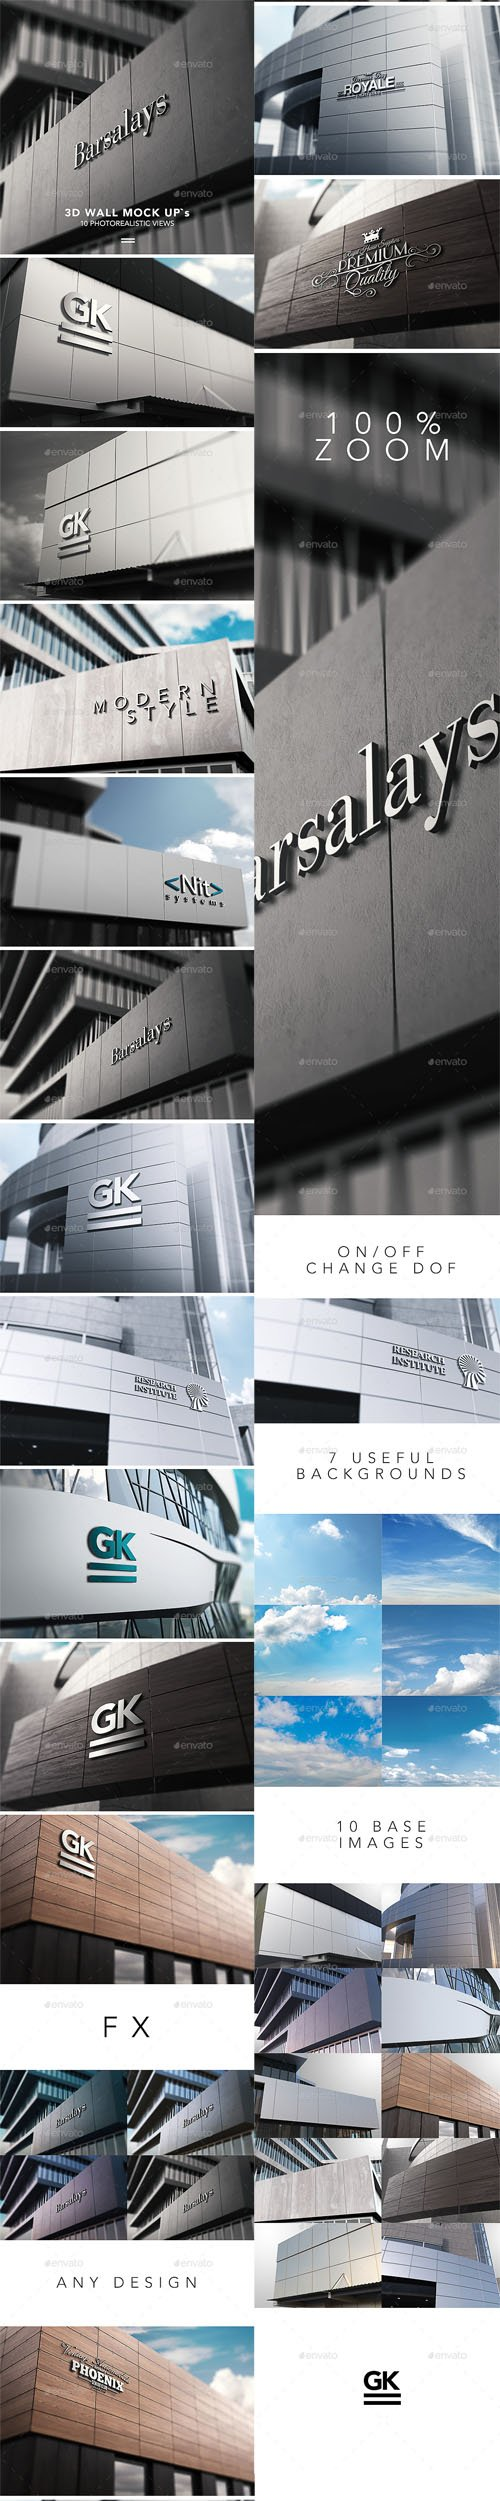 GraphicRiver - 3D Logo Signage Wall Mock Up 14345872